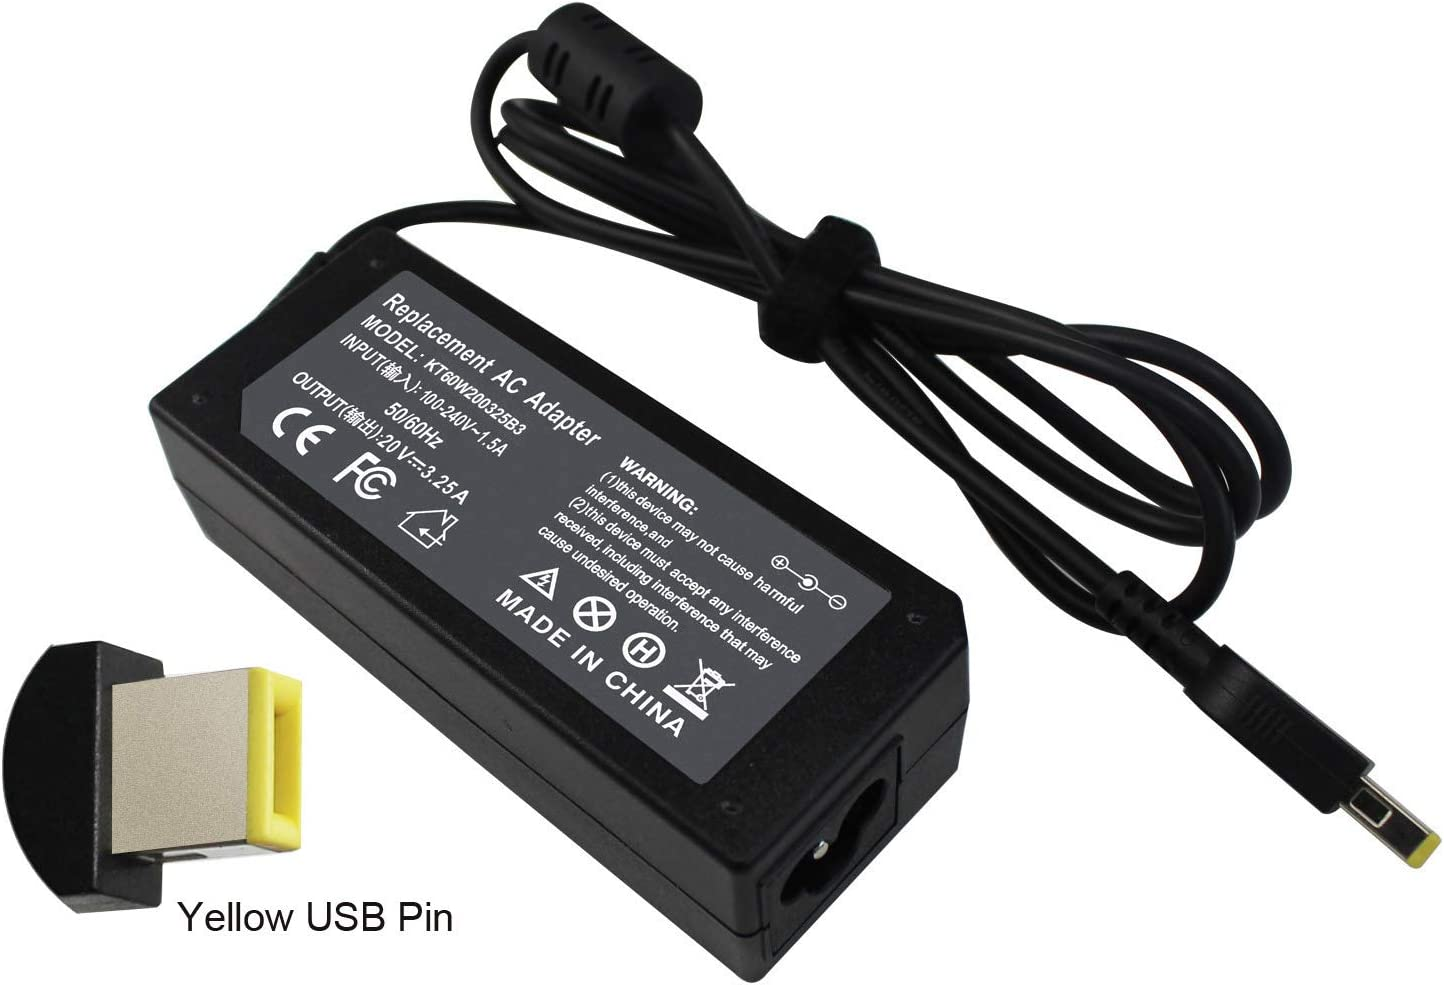 65W Slim Tip Laptop Charger AC Adapter for Lenovo ThinkPad X1 Carbon Touch Ultrabook, Yoga 2 13 11S Pro,T440 T450 T450s T460 T570 L450 E470, Flex 2 3 14 15 ADLX65NLC2A ADLX65NLC3A -12 Months Warranty